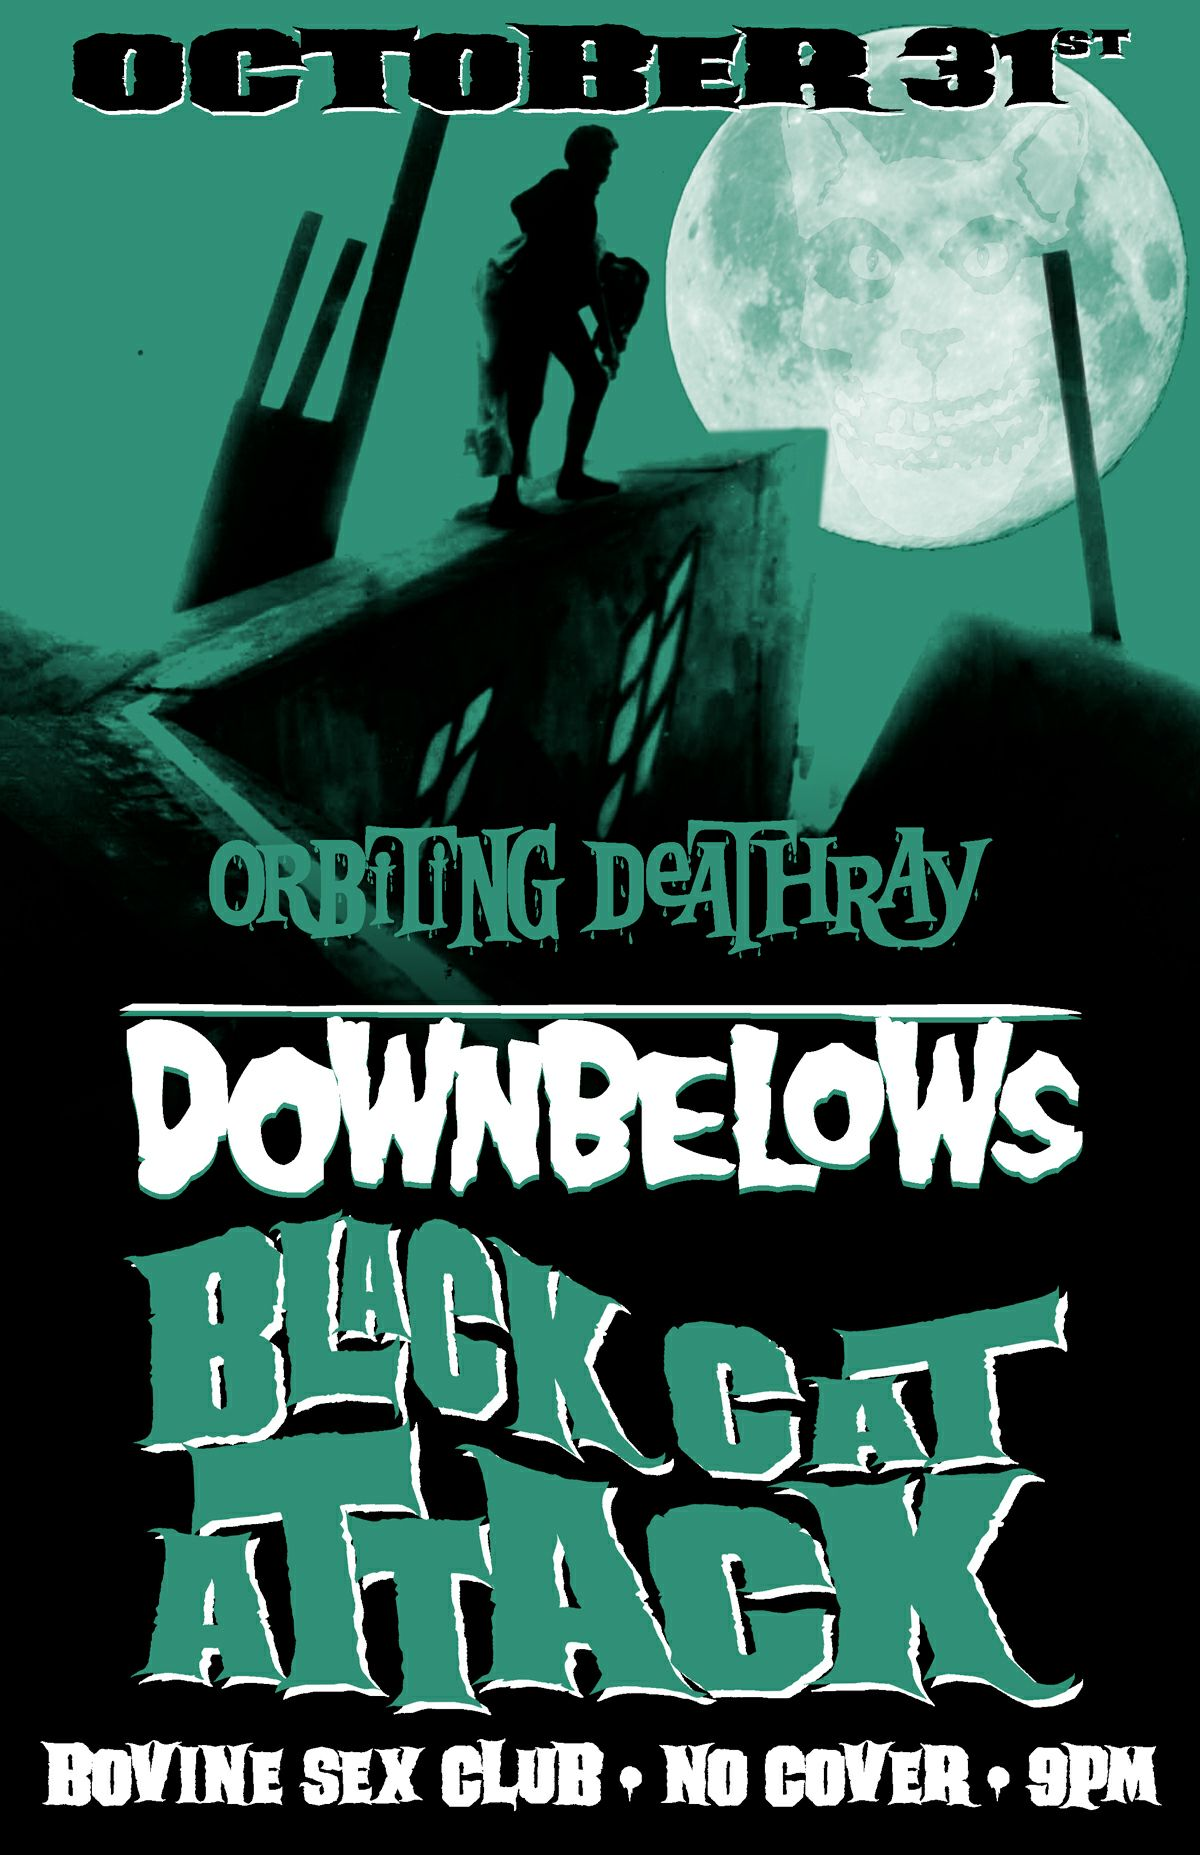 The Down Belows + Black Cat Attack